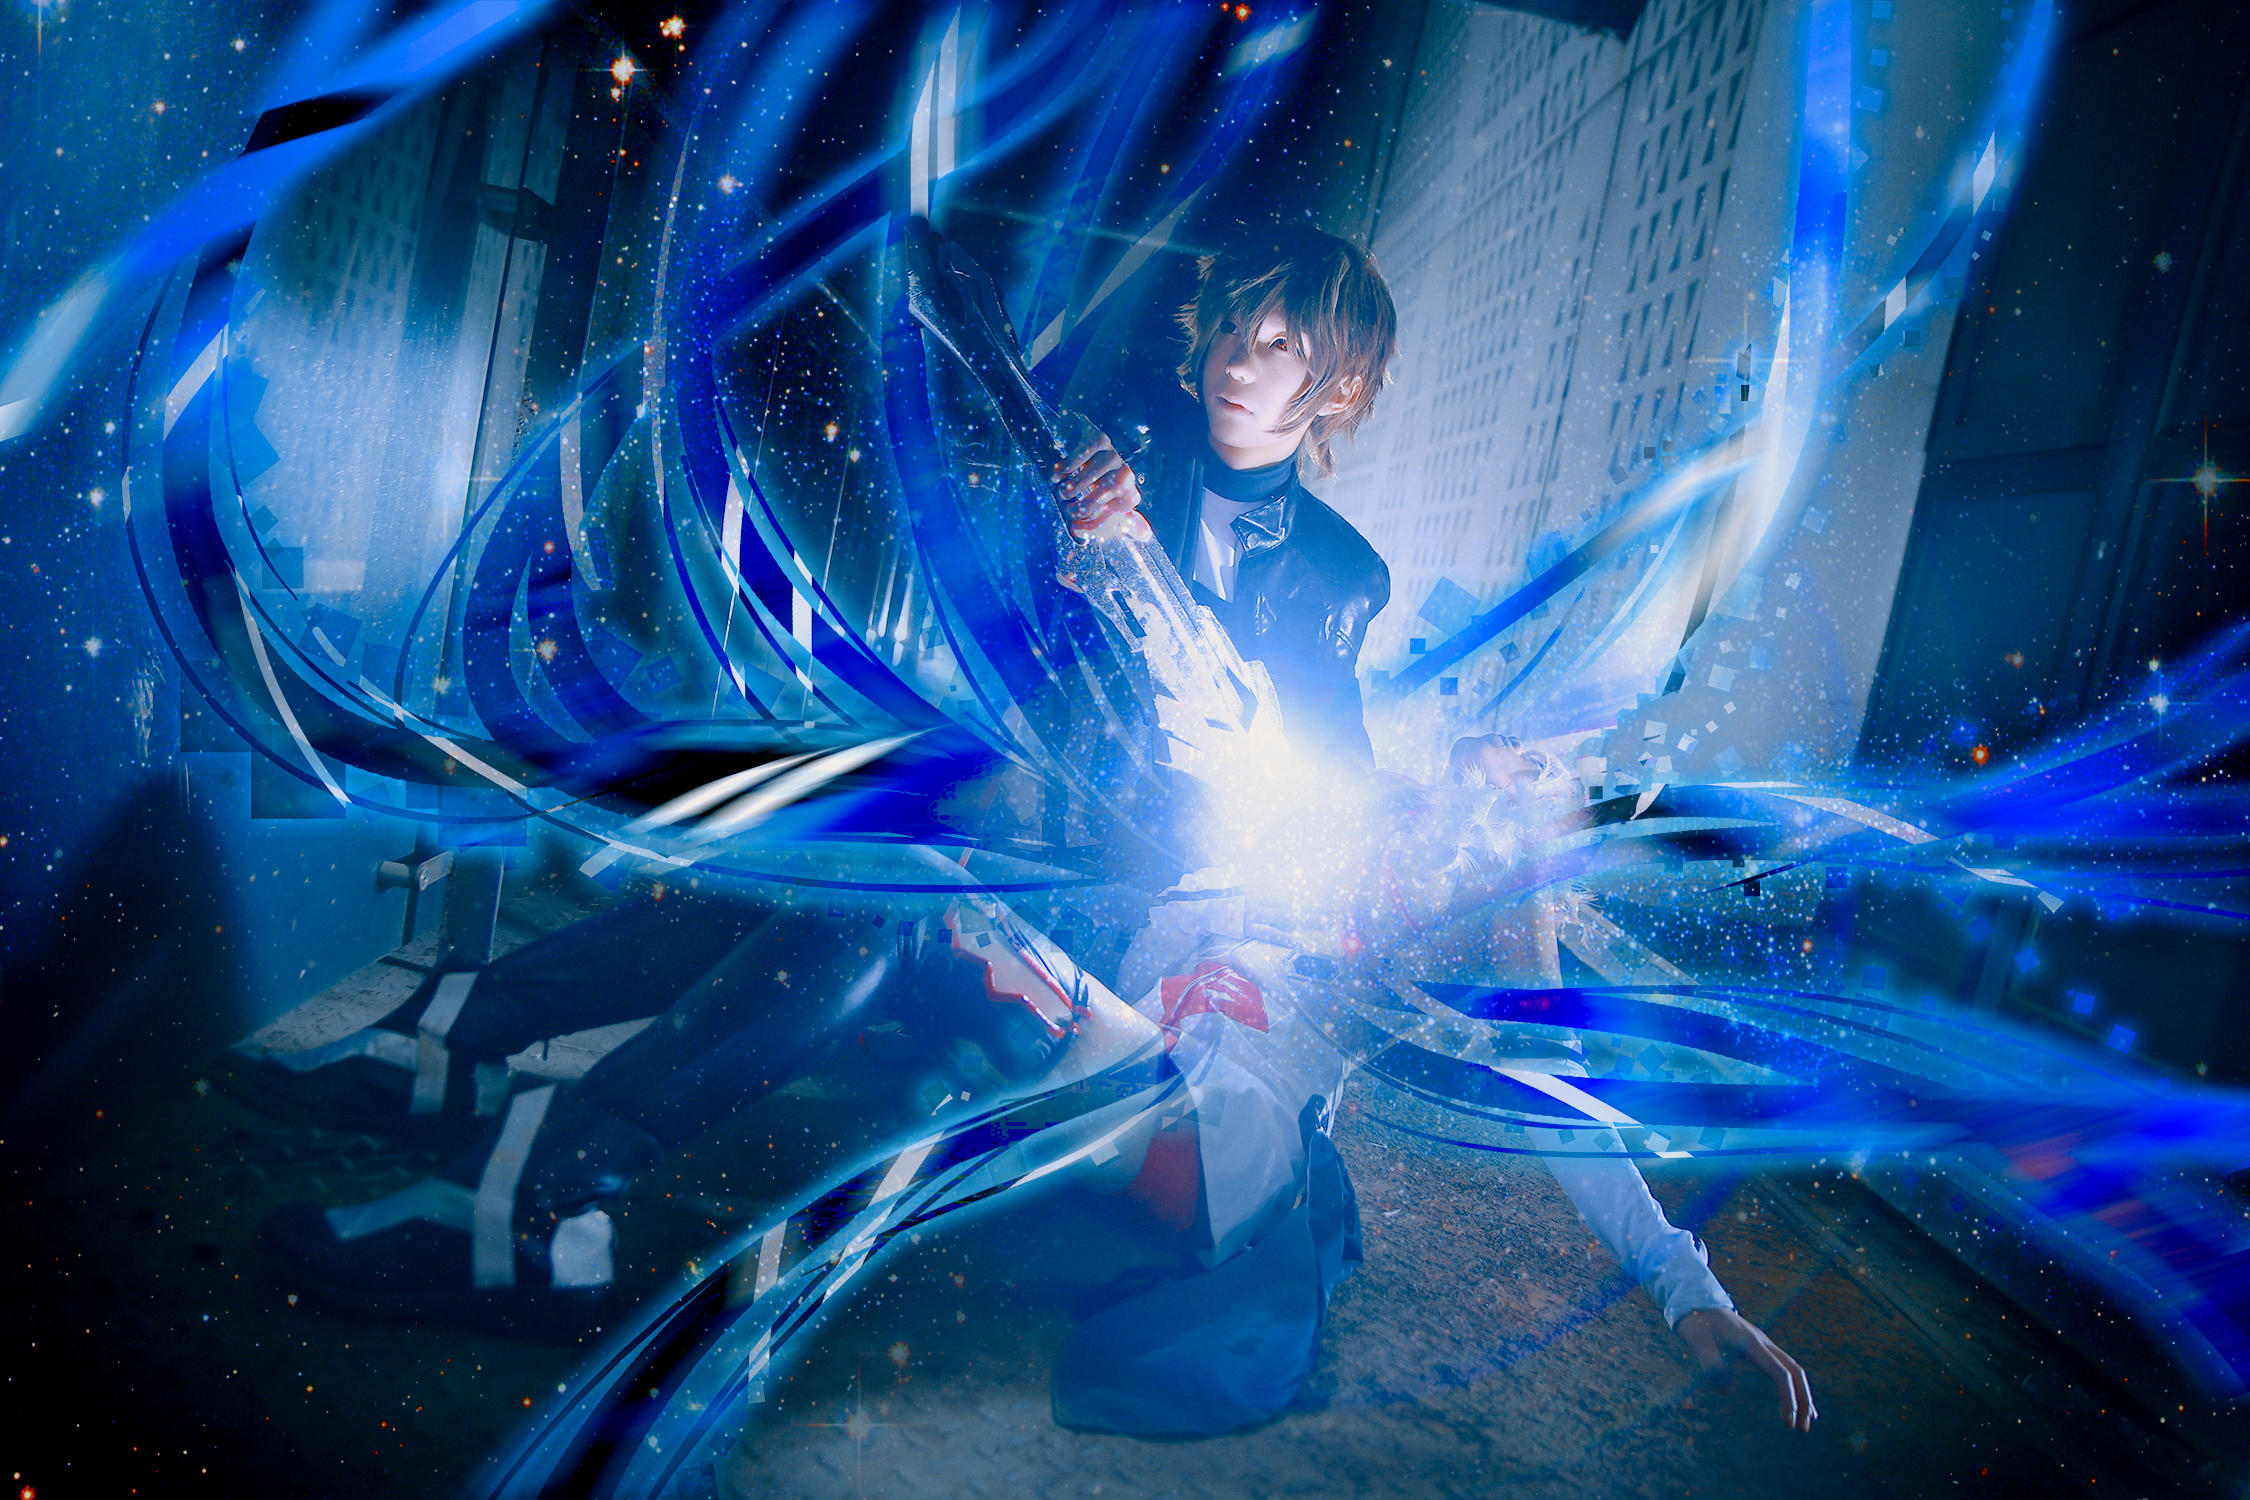 【Cosplay】罪恶王冠 COS